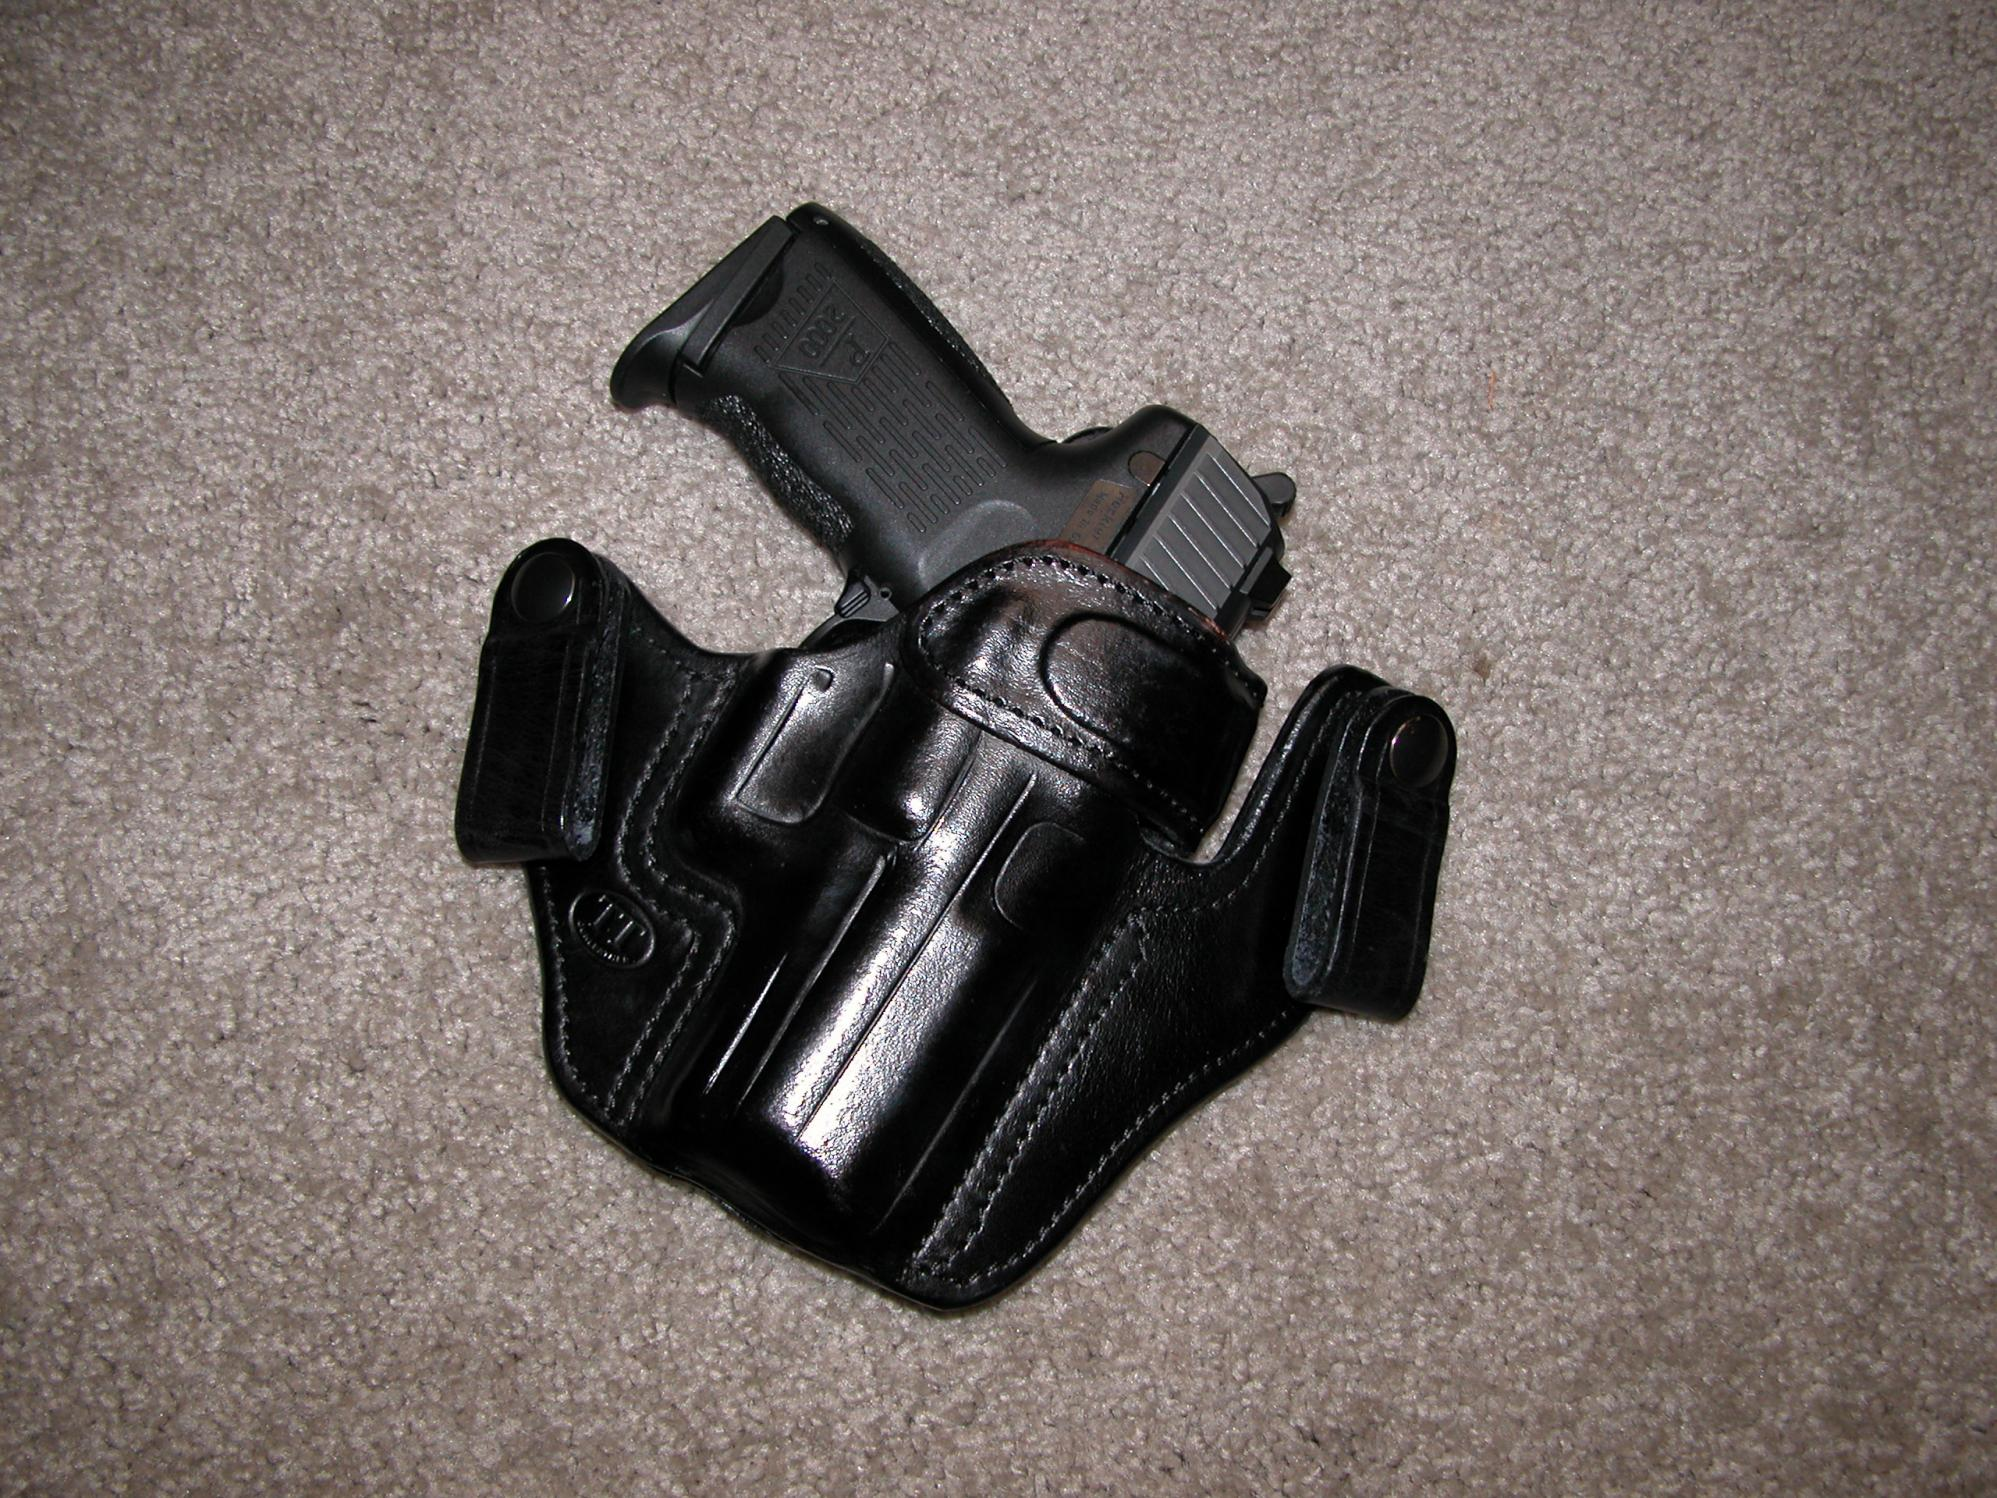 HK USP Compact, what holster do you use?-tt-gunleather-iwb.jpg